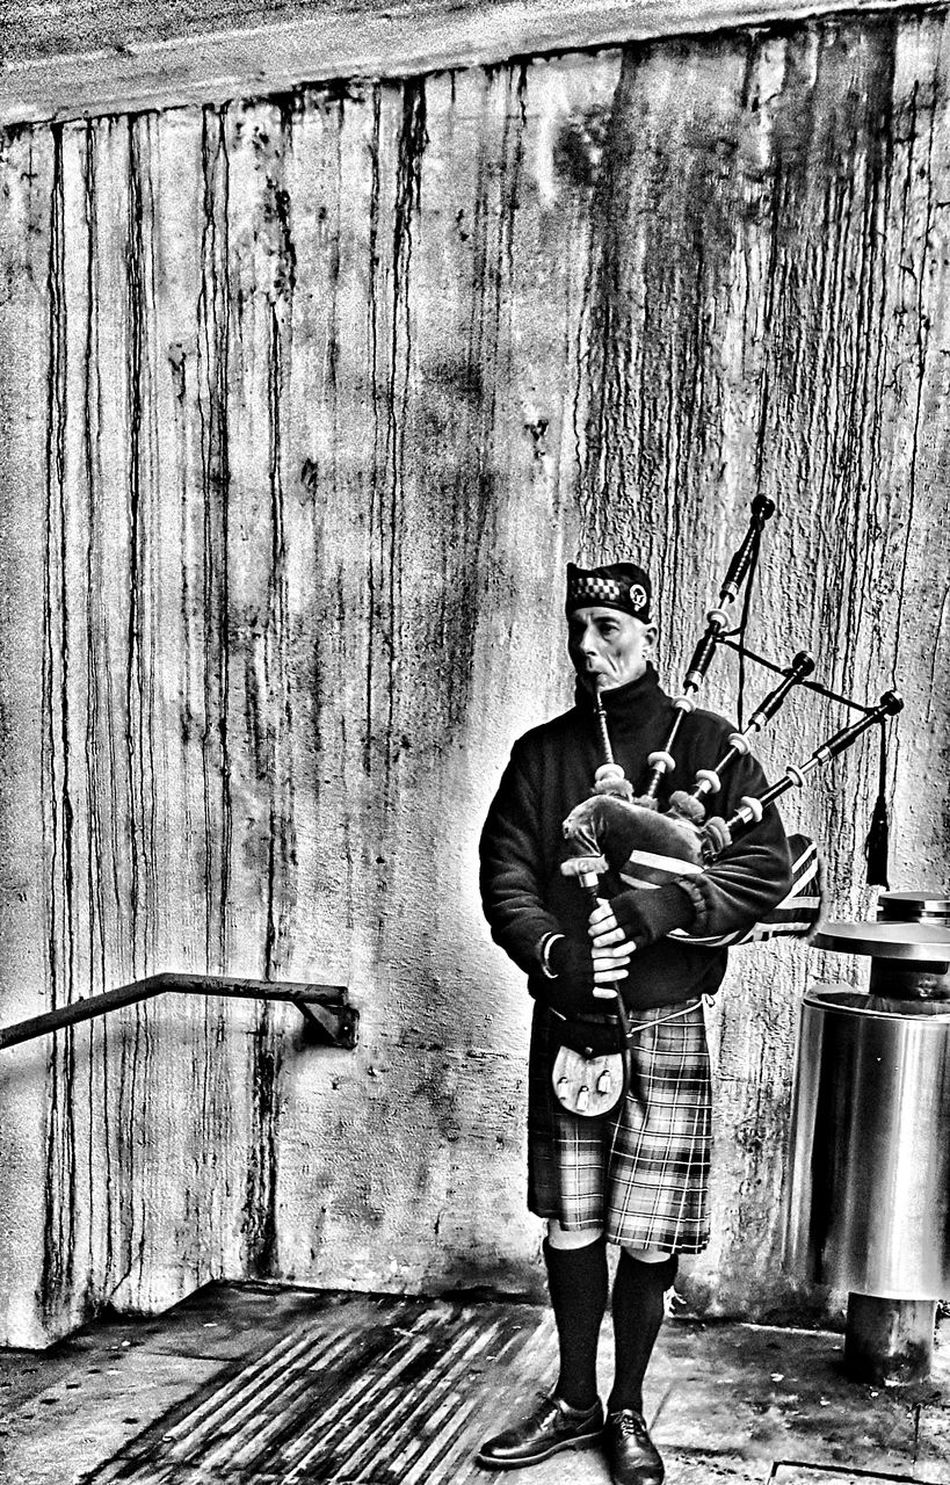 Pipes of peace. One Person Holding Real People Outdoors Standing One Man Only Musical Instrument Emotions Captured Underpass Veteran Bagpipes Bagpiper Music Black & White